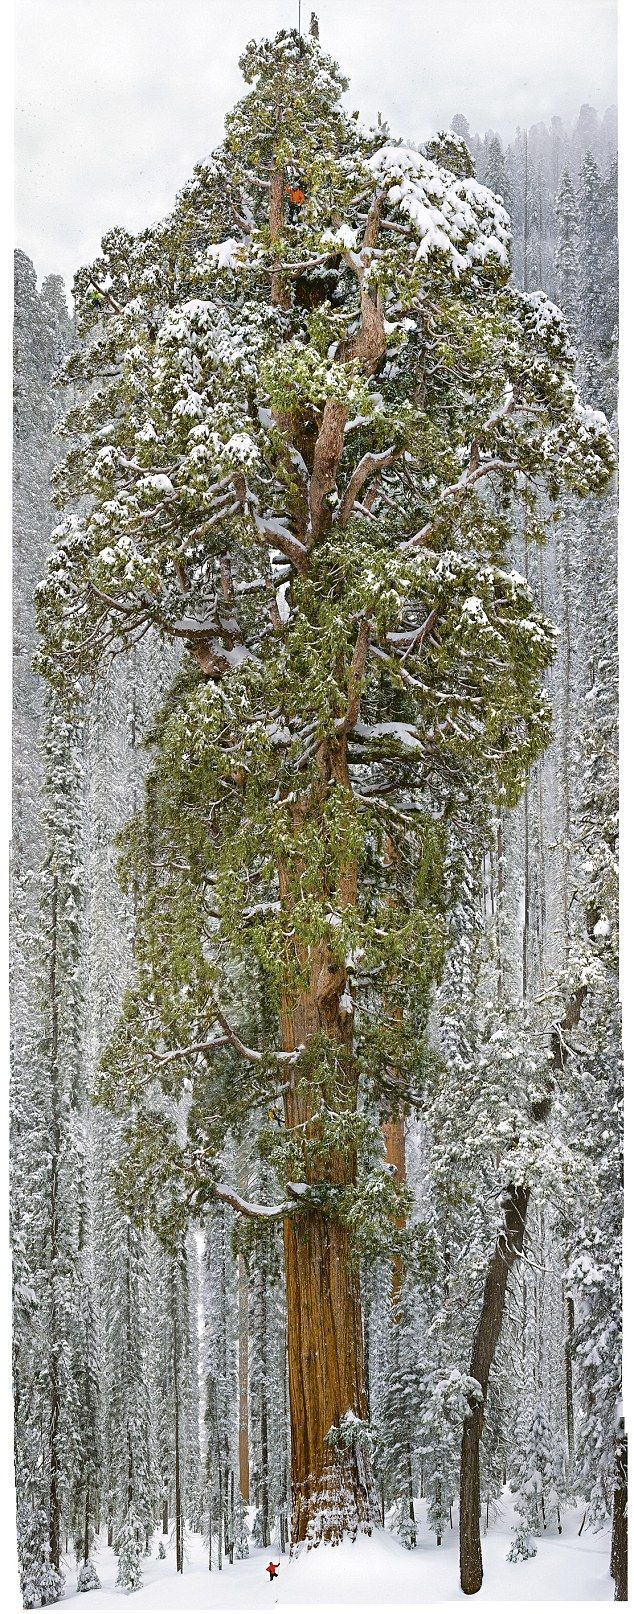 Giant: A team of scientists and photographers have captured a full-length portrait of the 'President', a 3,200 year-old tree in the U.S. state of Nevada